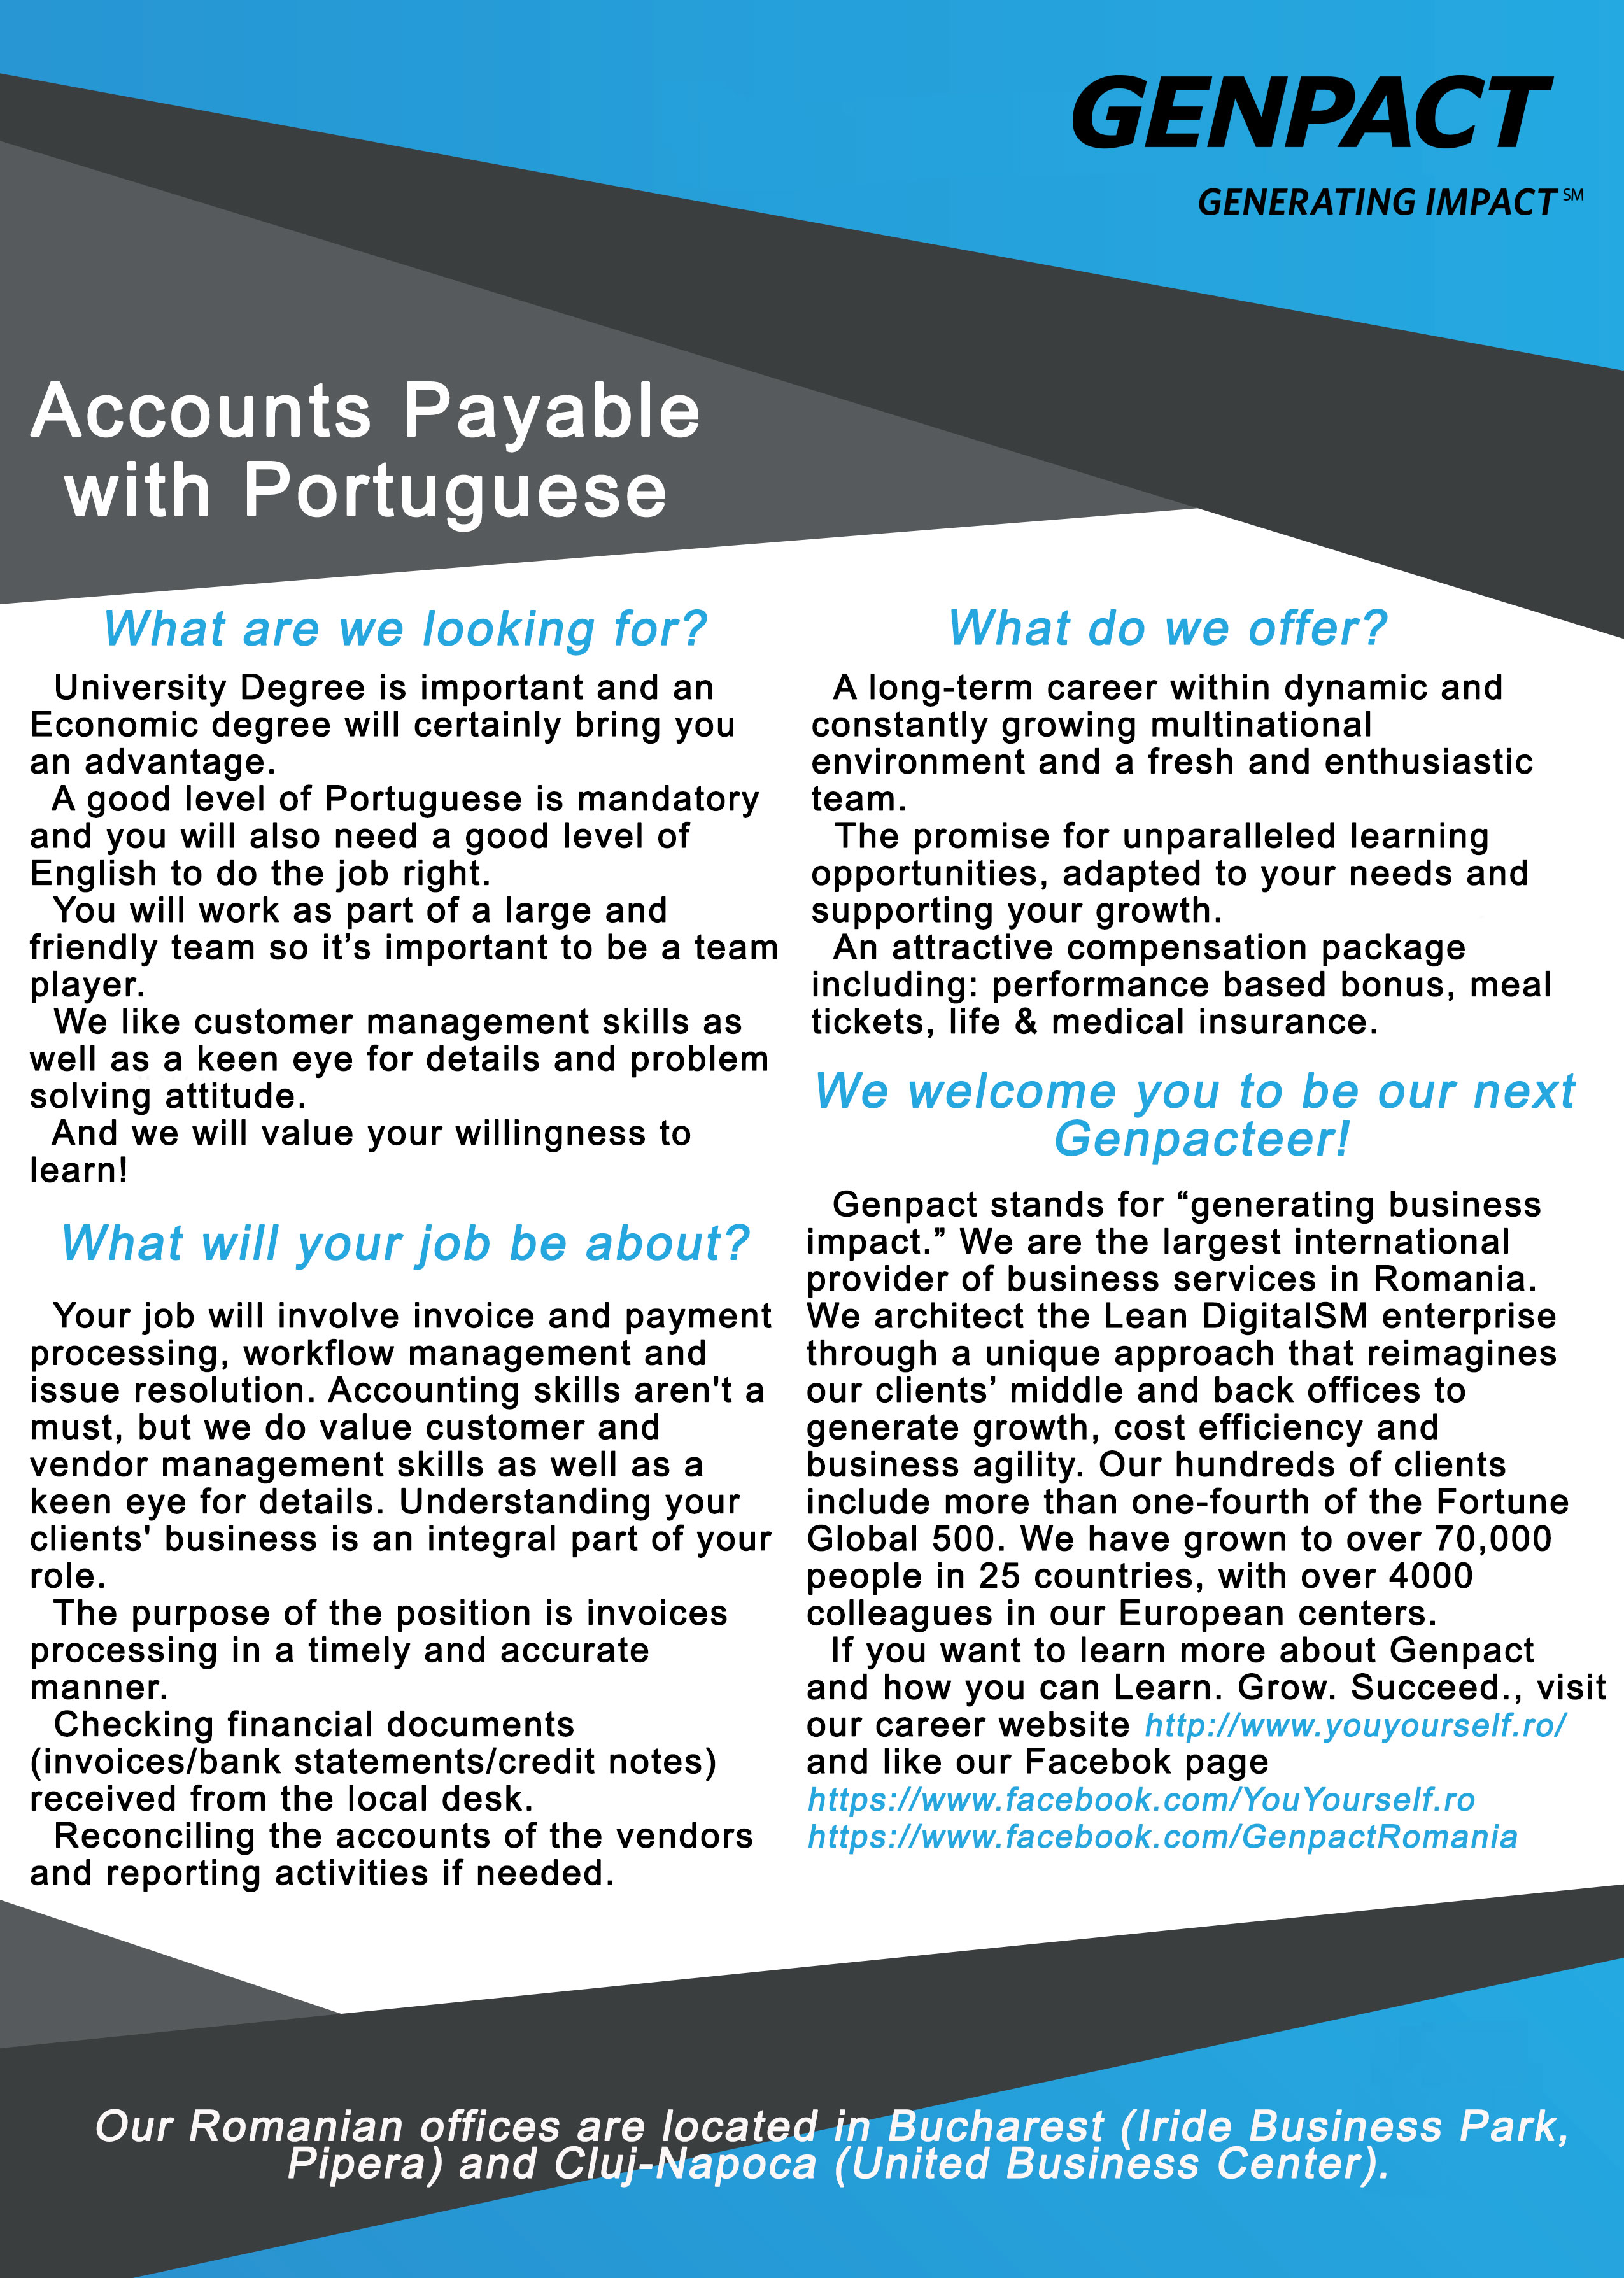 Accounts Payable with Portuguese